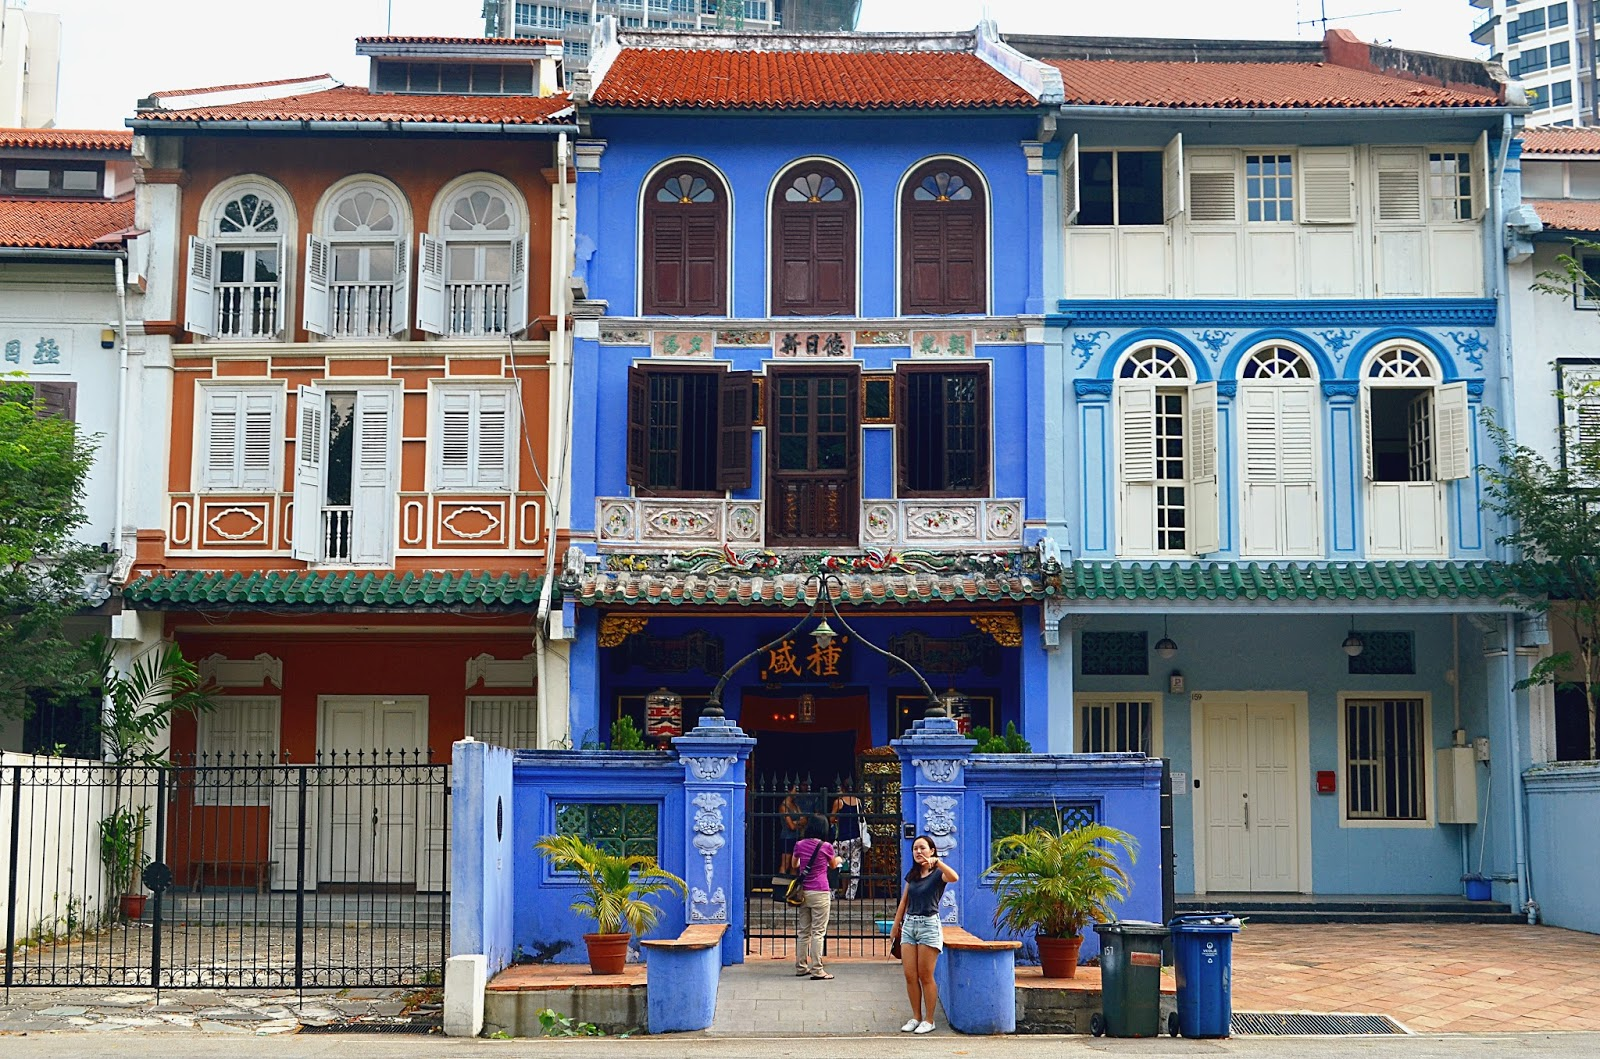 Hong Kong House 5 Types Of Shophouses In S Pore That You Definitely Didn T